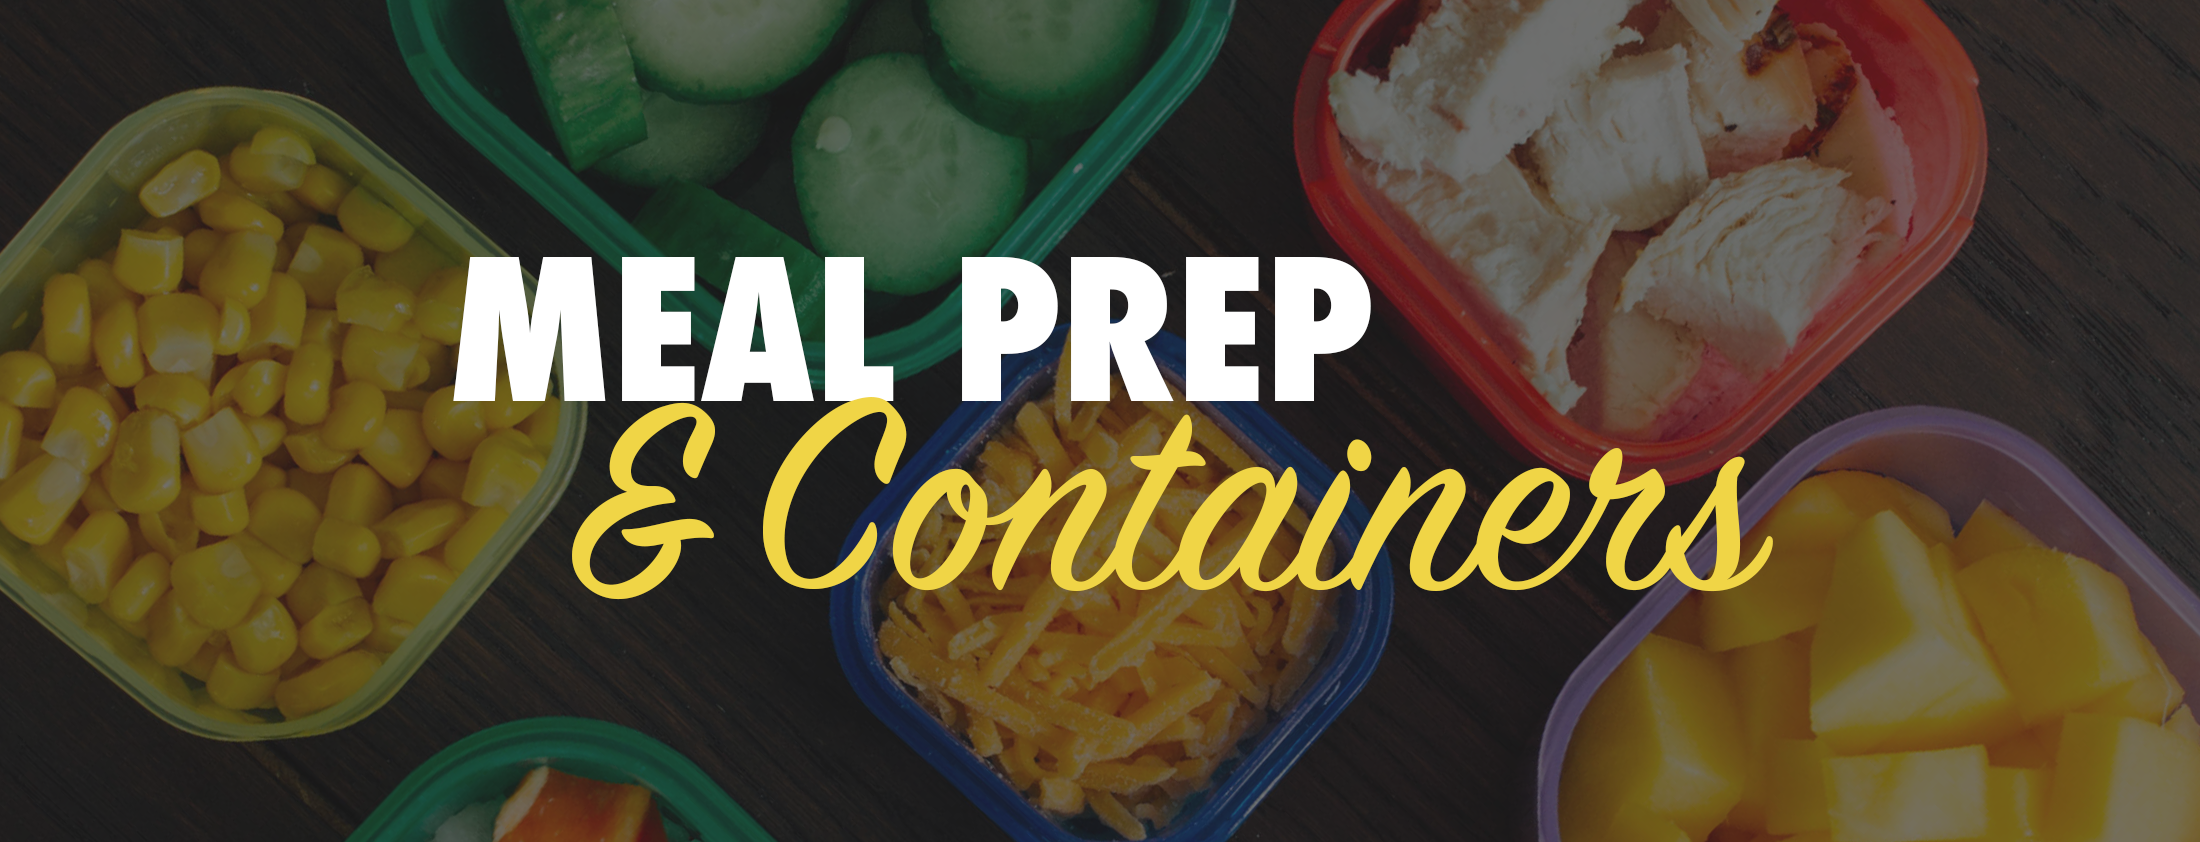 meal prep, 21 day fix, meal prep container guide 21 day fix